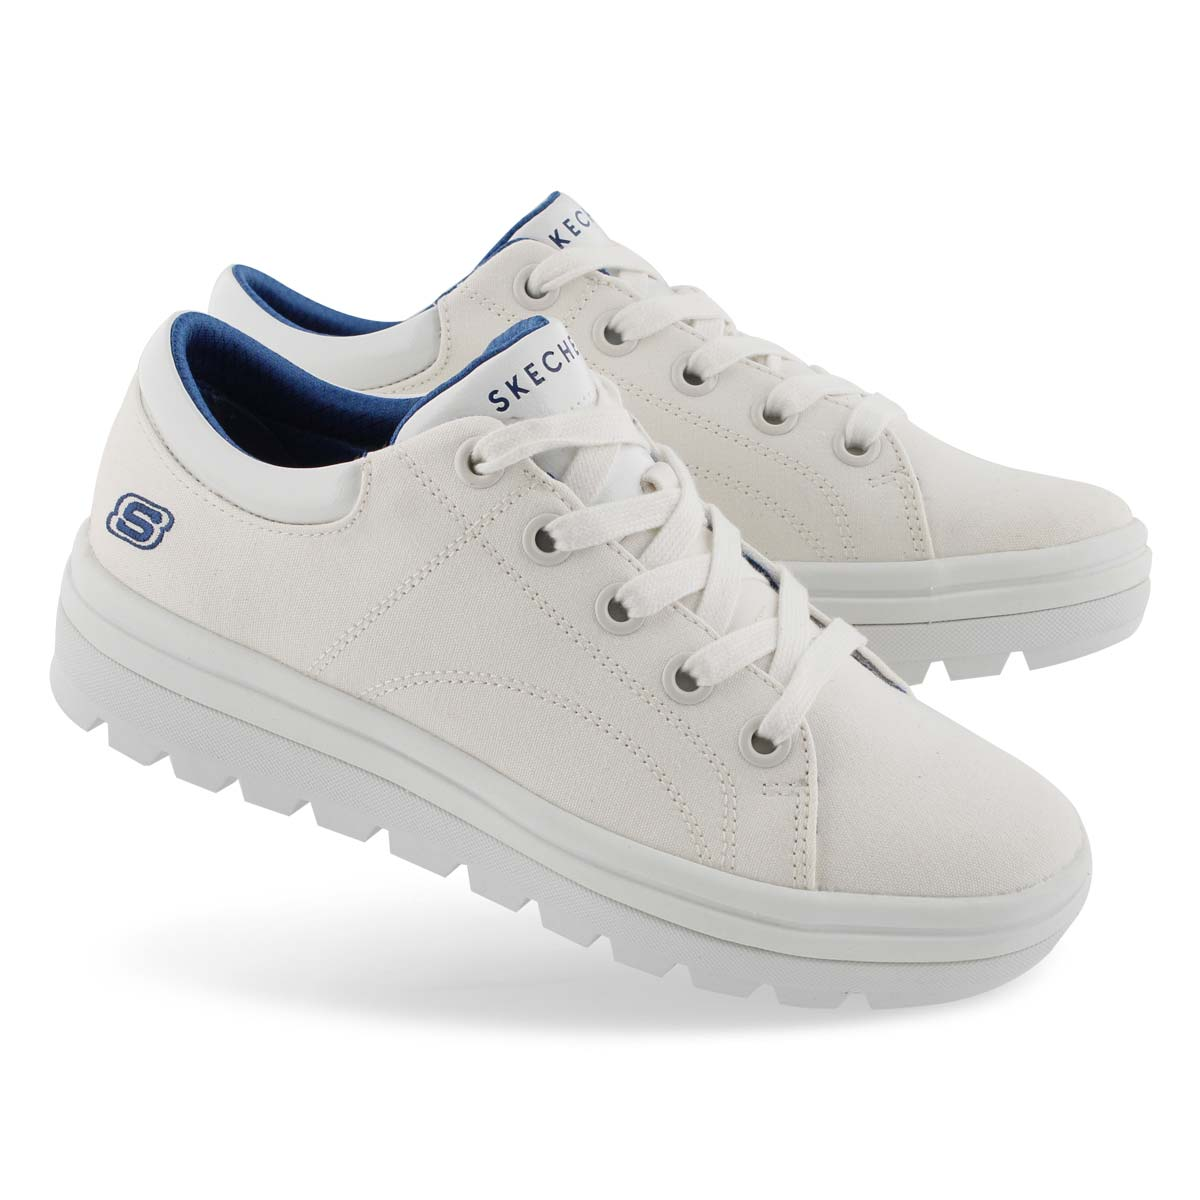 Lds Street Cleats 2 wht fashion snkr